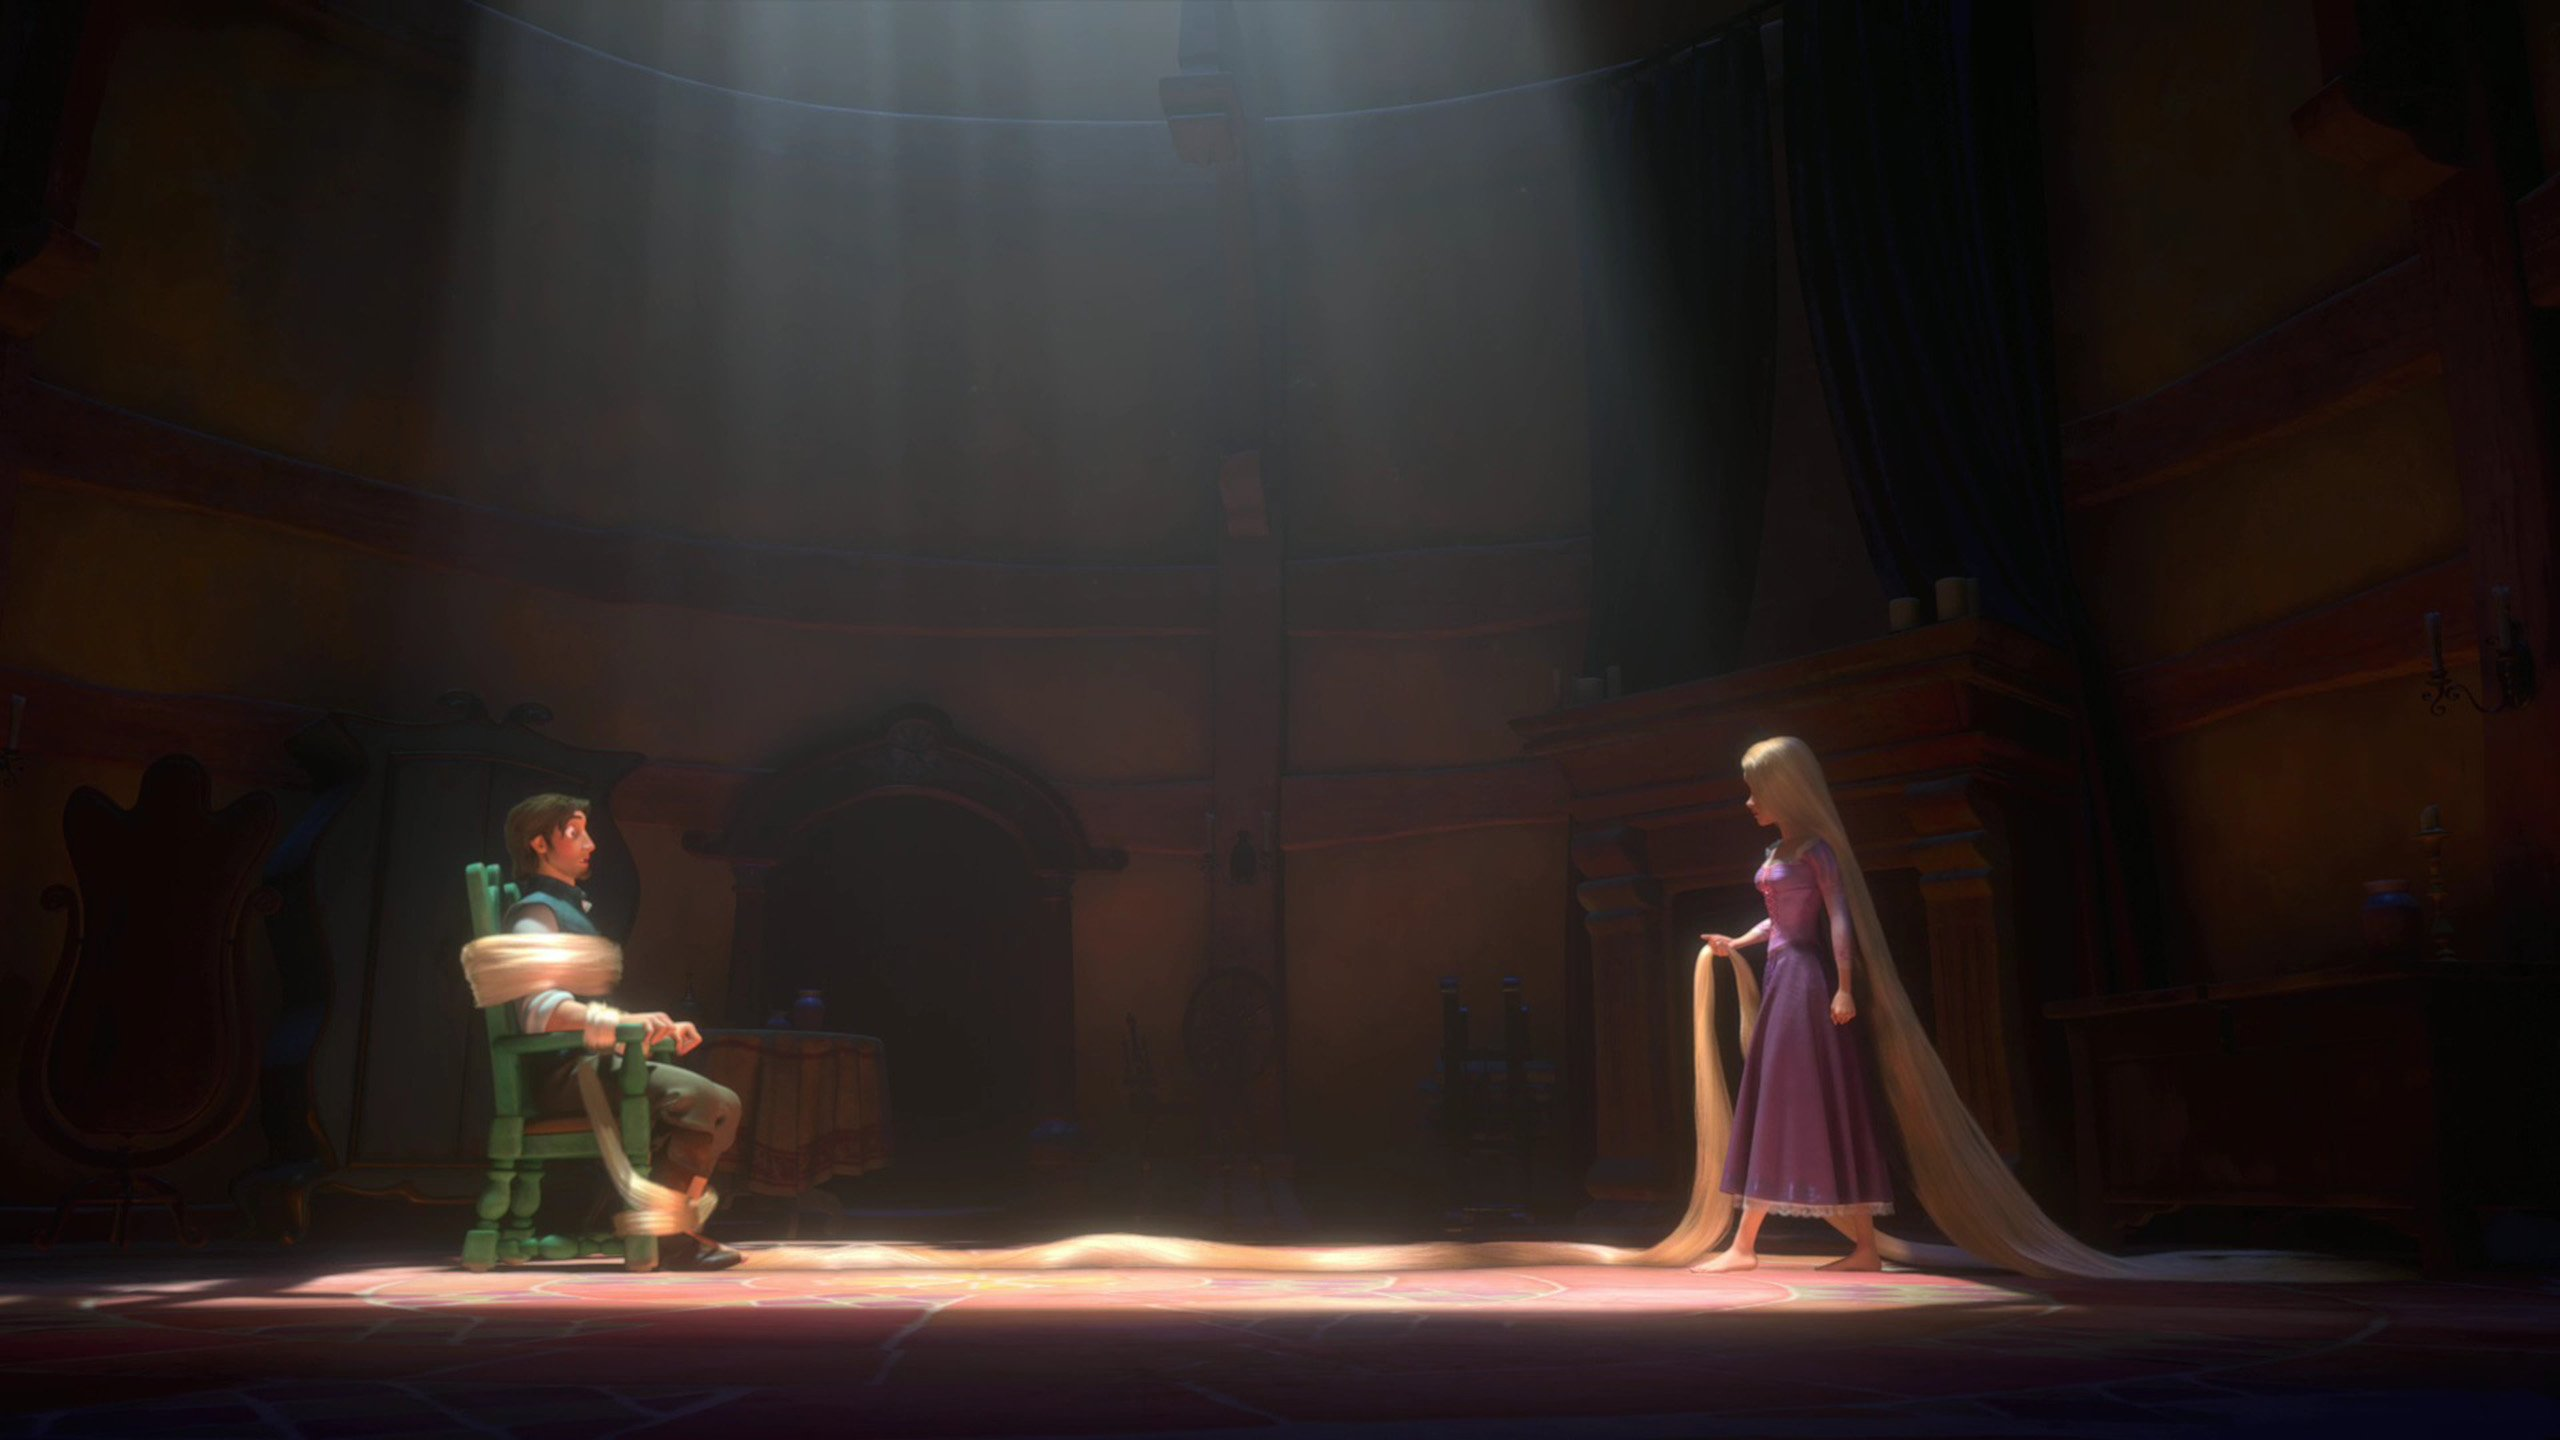 tangled-139(www.TheWallpapers.org).jpg